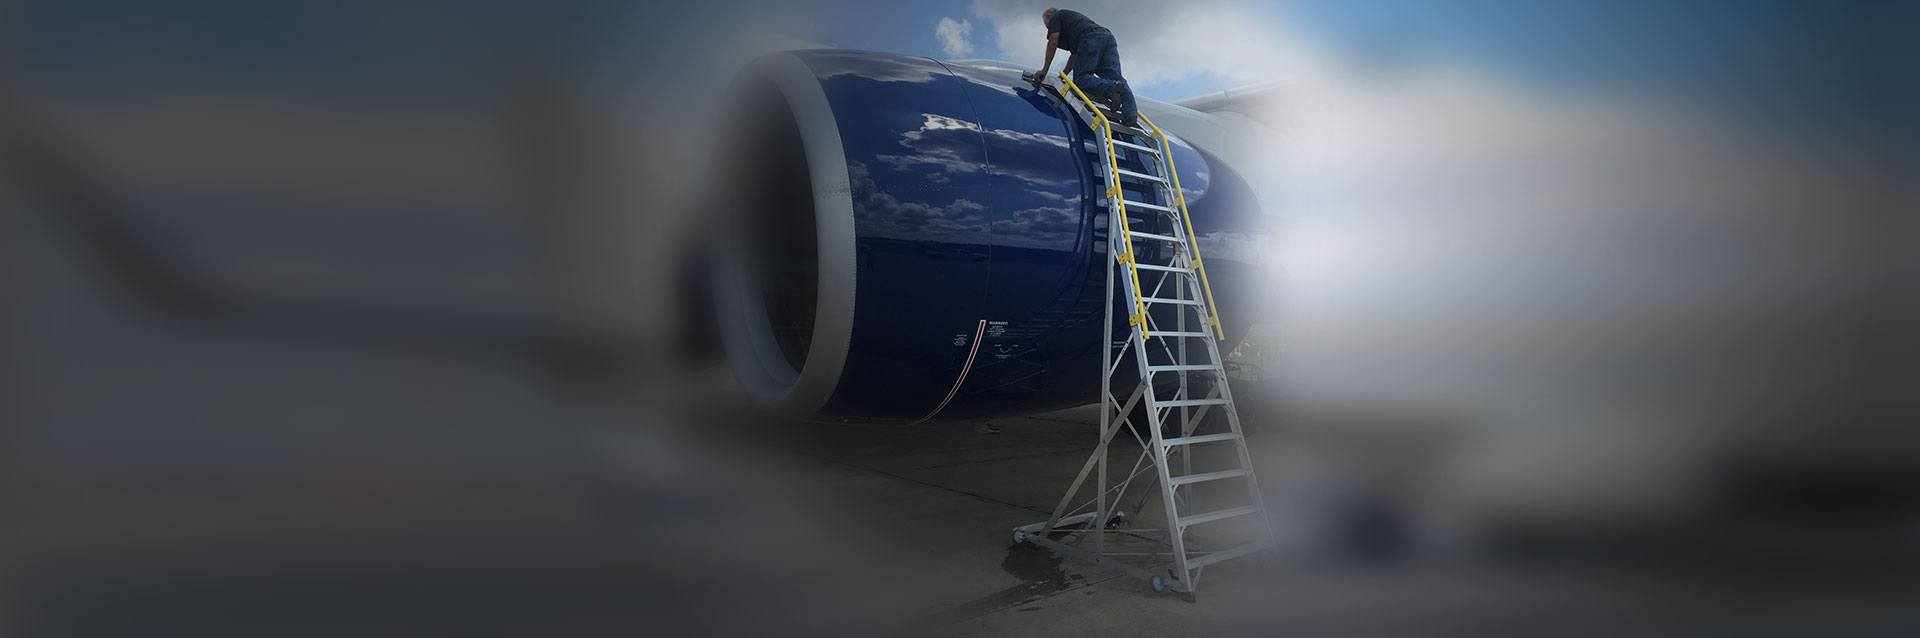 18 Foot Cowl Pylon With Technician Working On Boeing 777 Engine On Tarmac Hero Shot